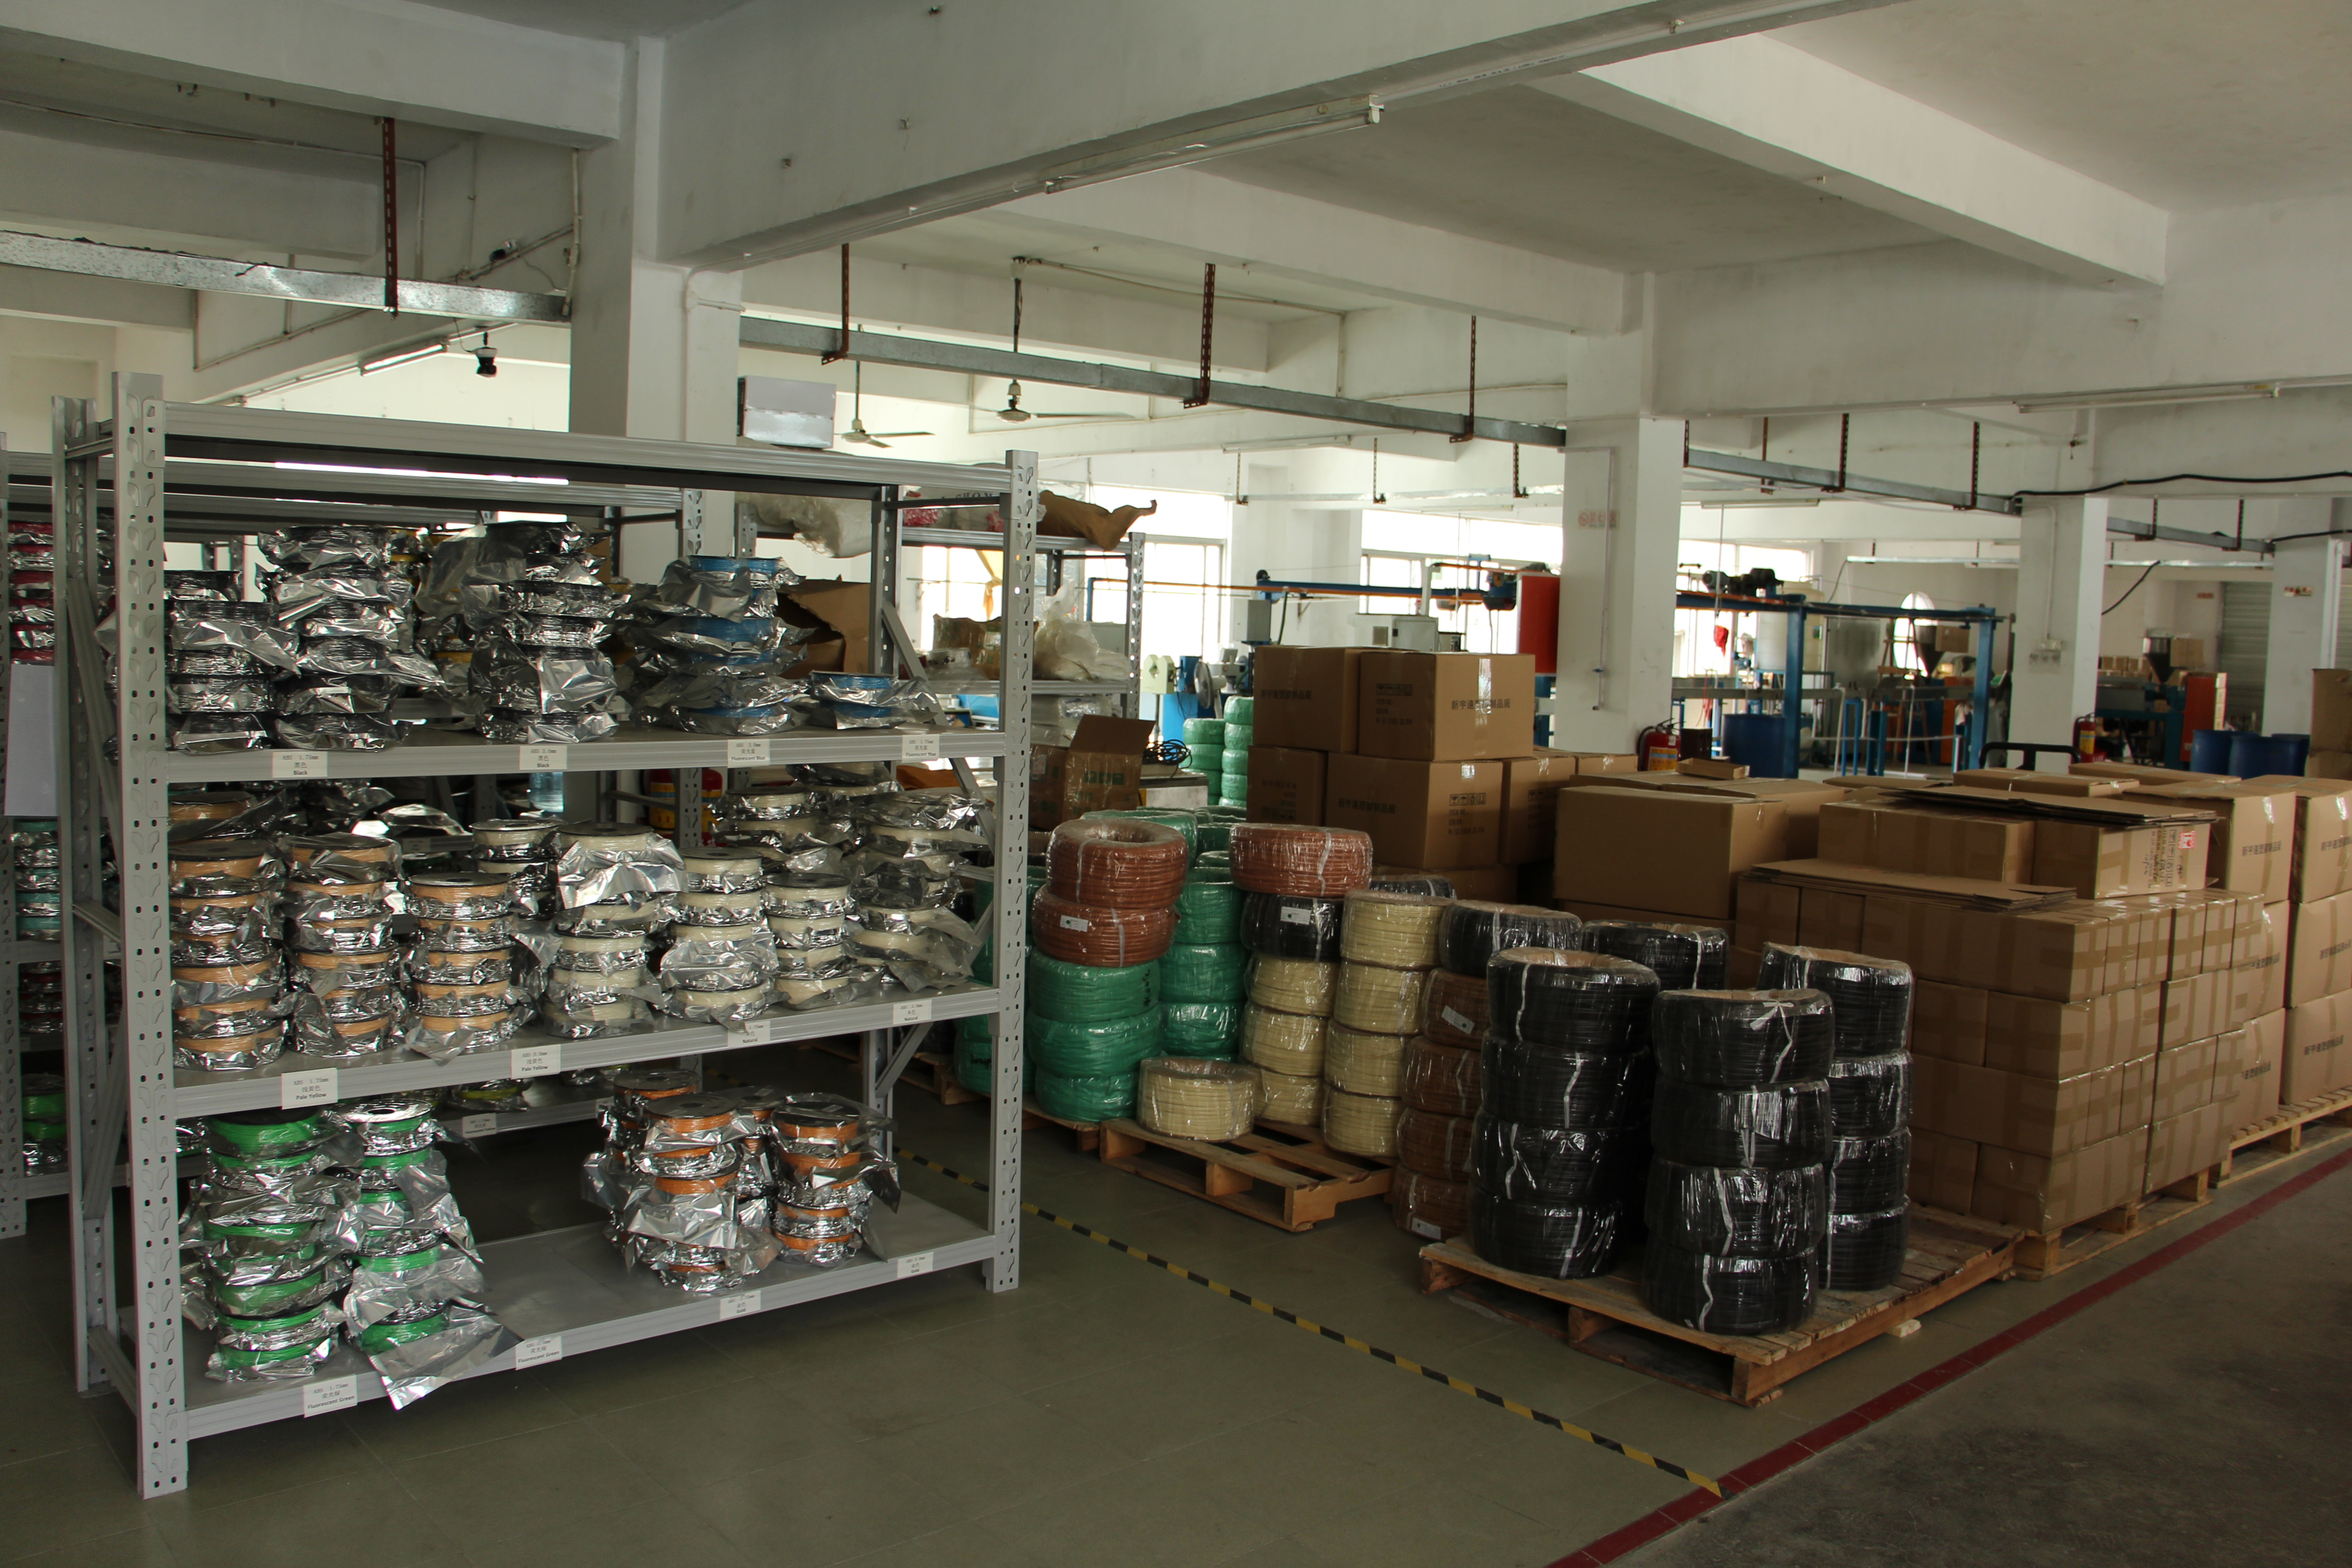 3D Filament Factory in Shenzhen